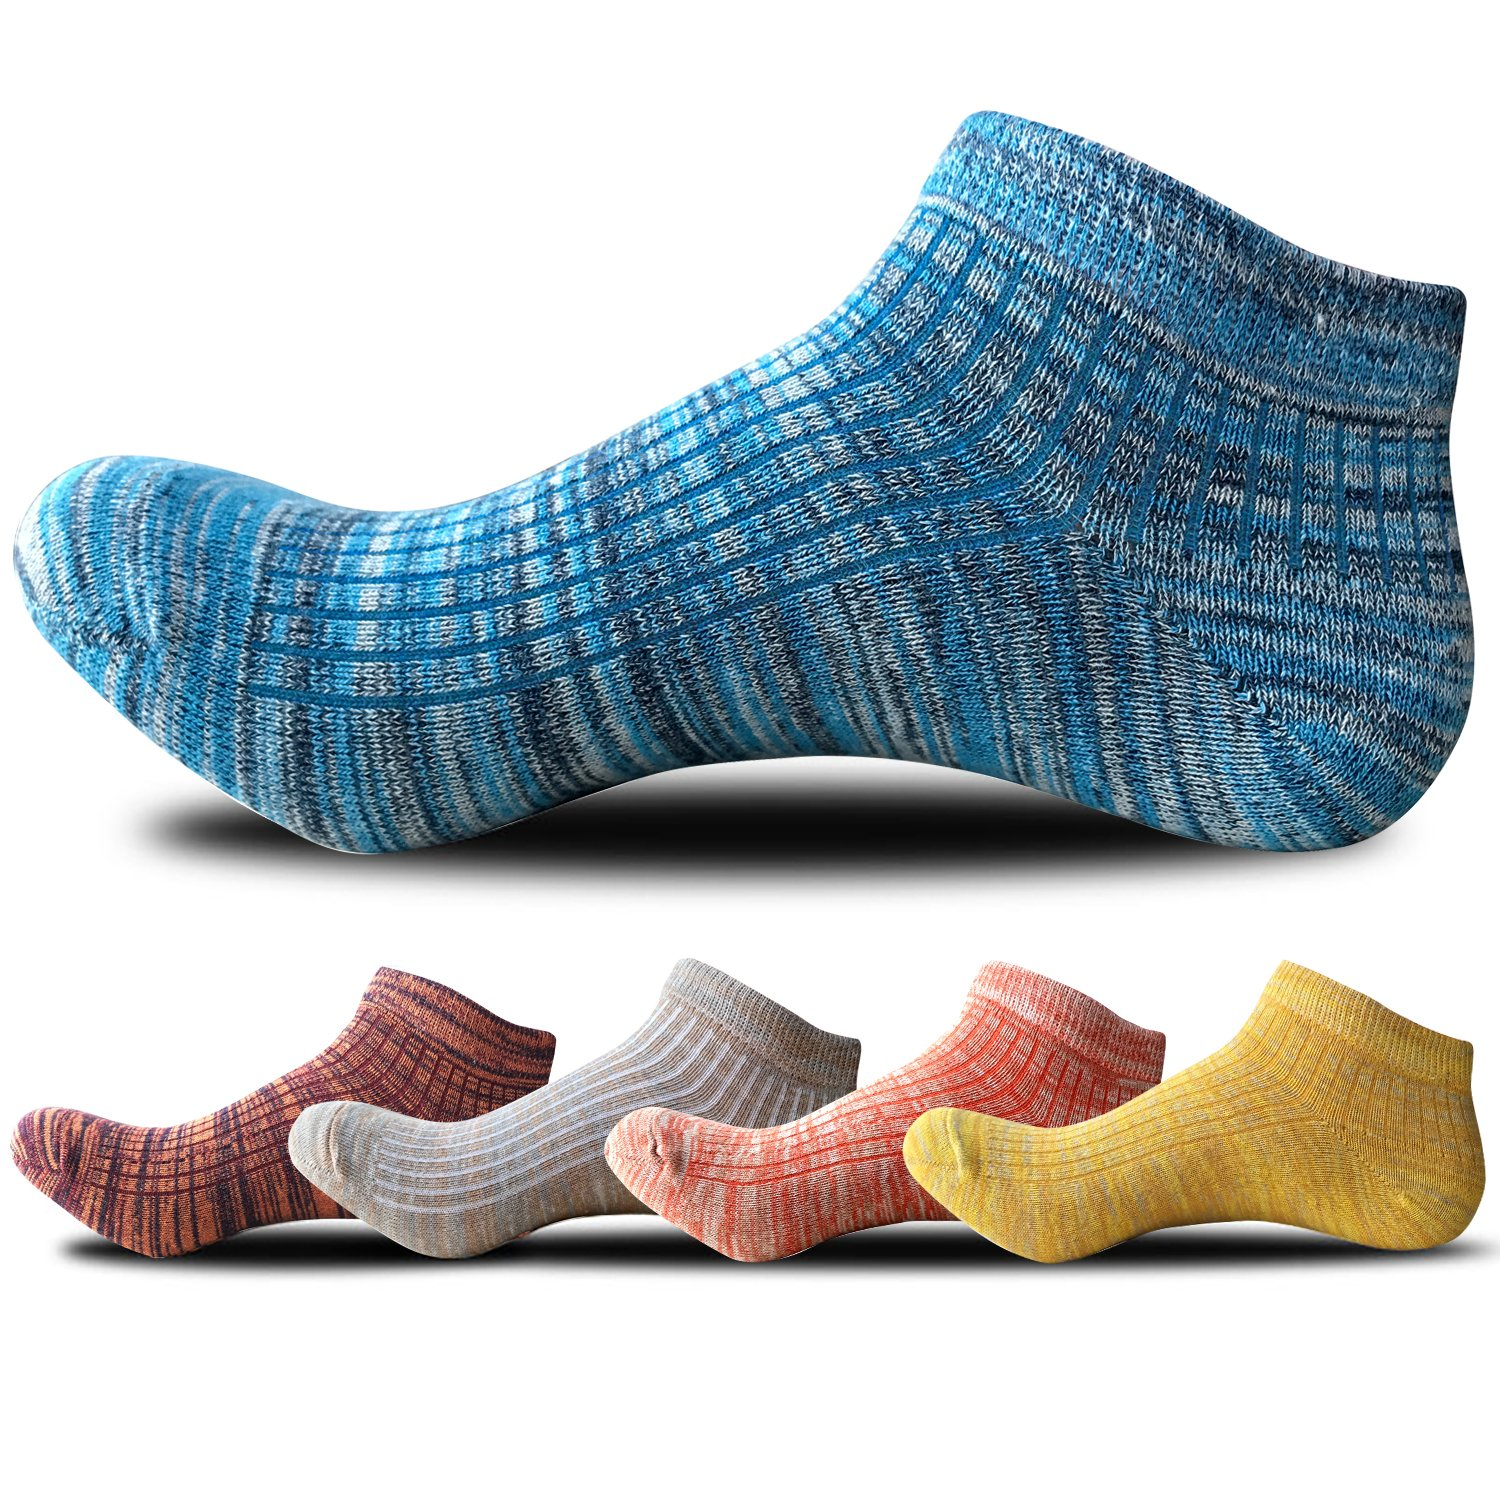 Men's Ankle Crew Socks Low Cut Causal Socks 5 Pairs(Assorted Color) by TuSocks